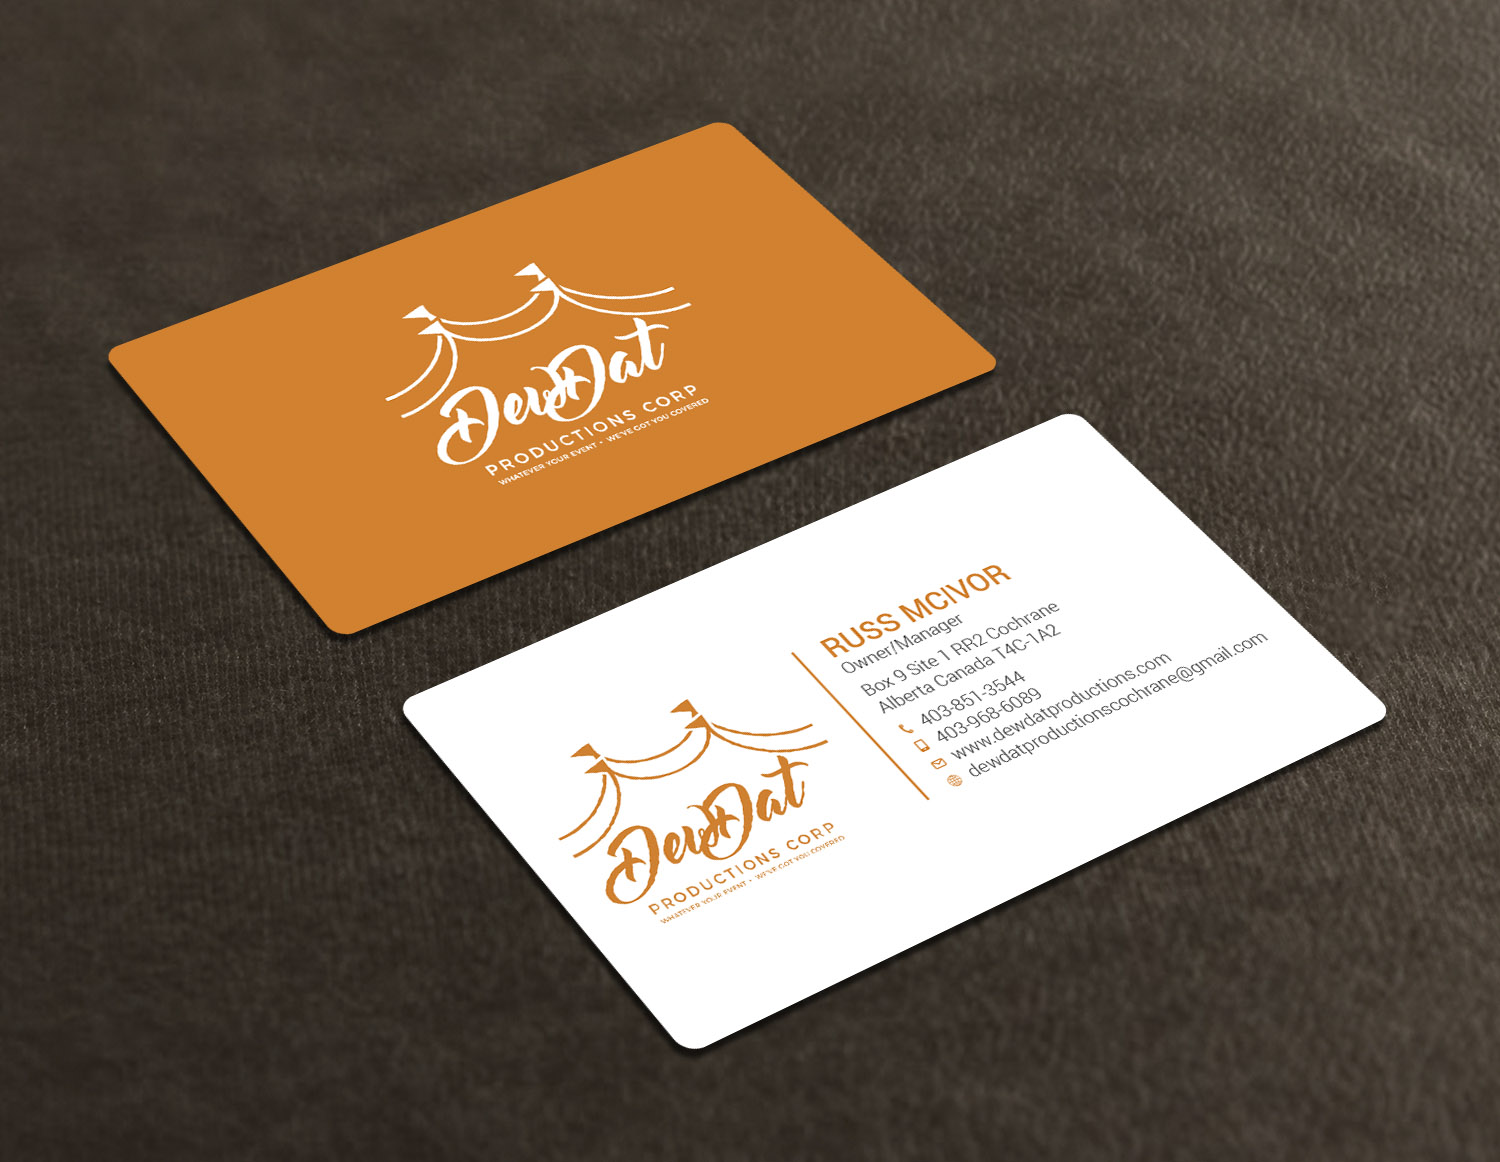 Contractor Business Card Design for a Company by Avanger_000 ...